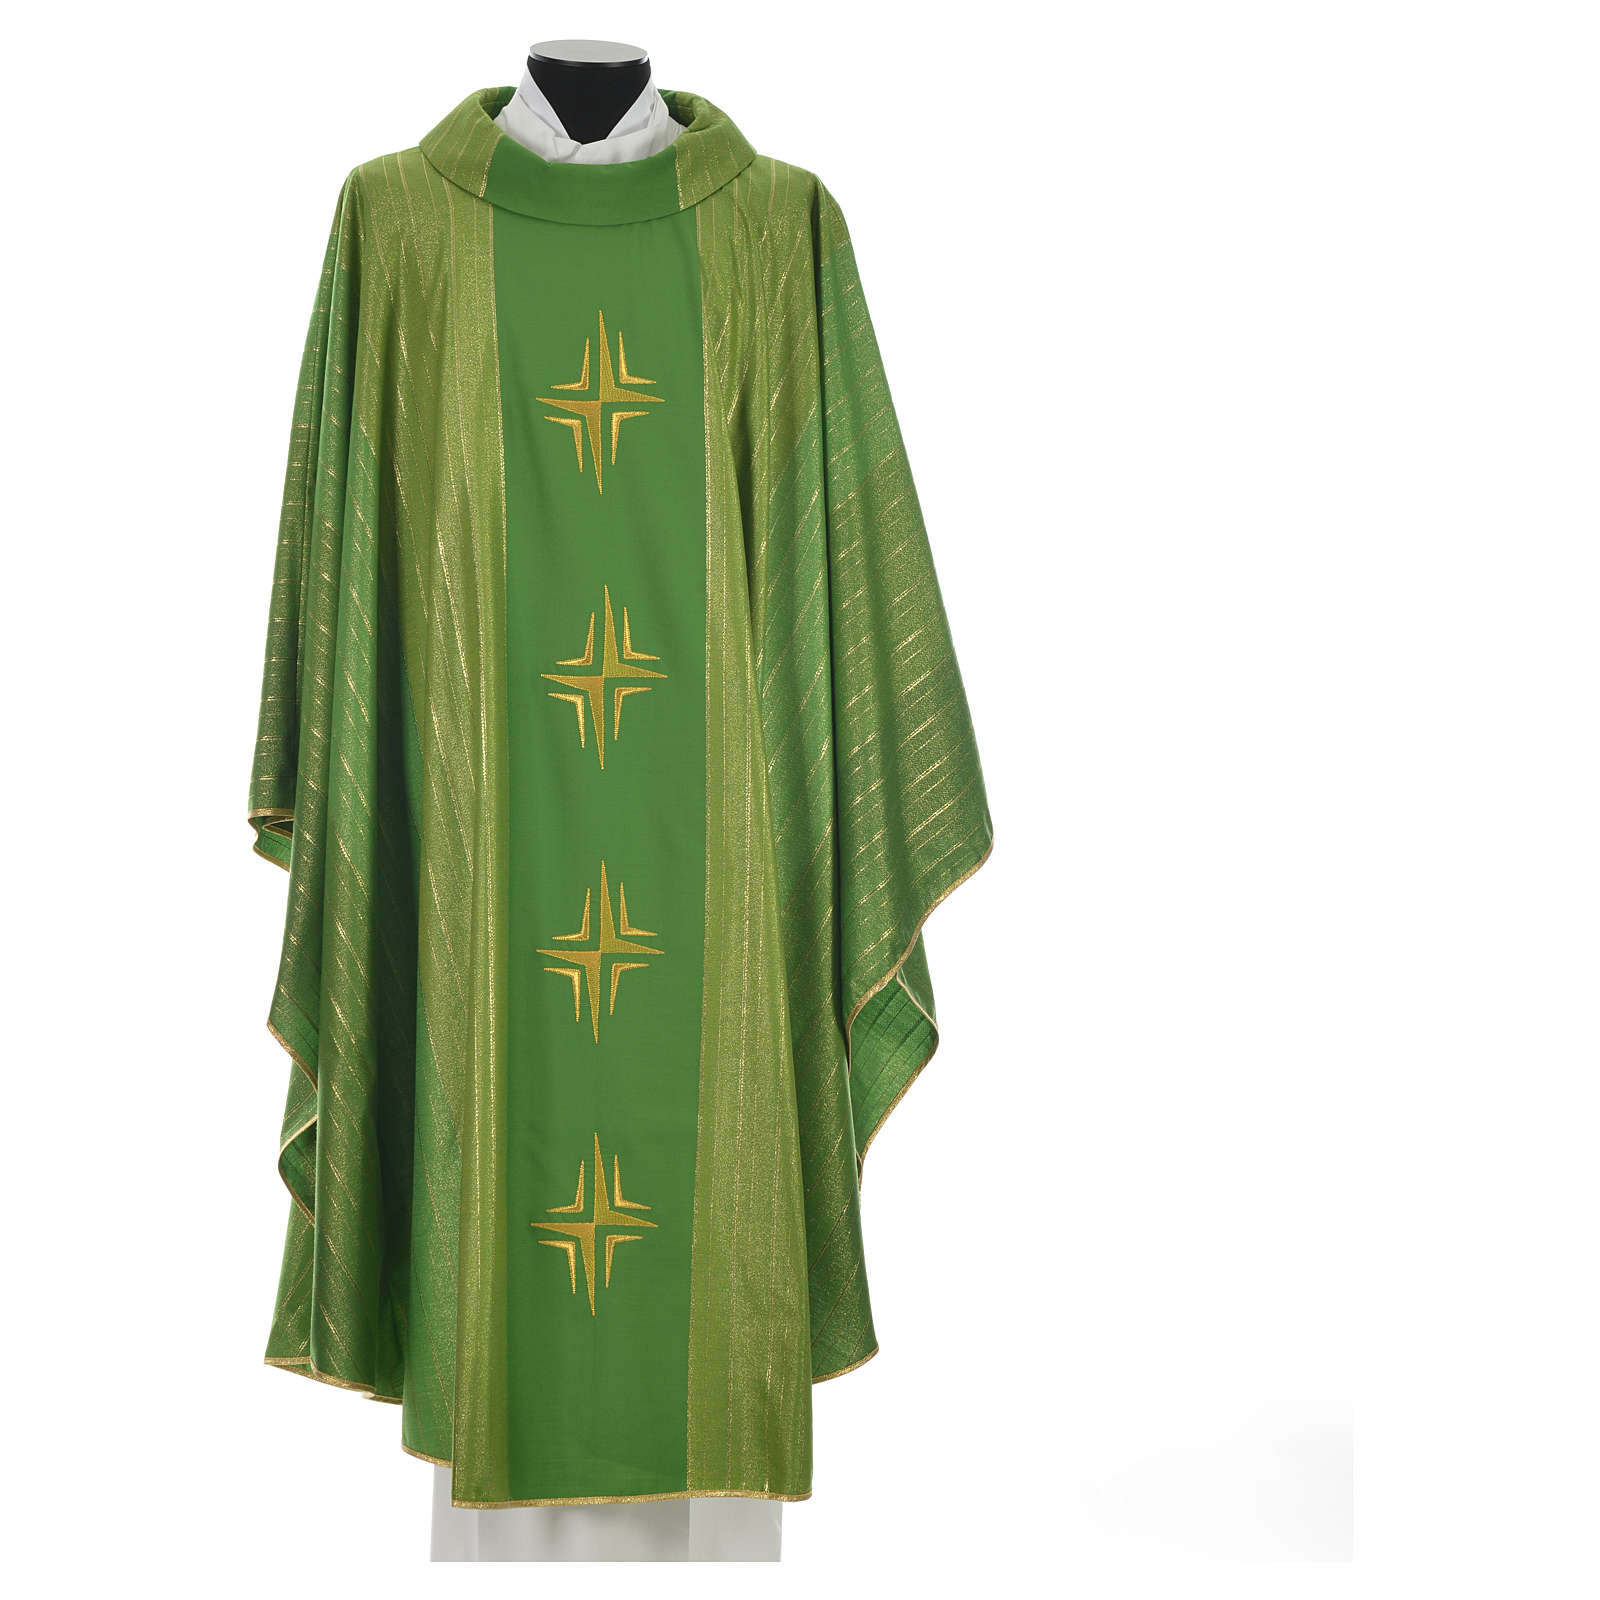 Chasuble 4 crosses in Tasmanian wool with double twisted yarn 4